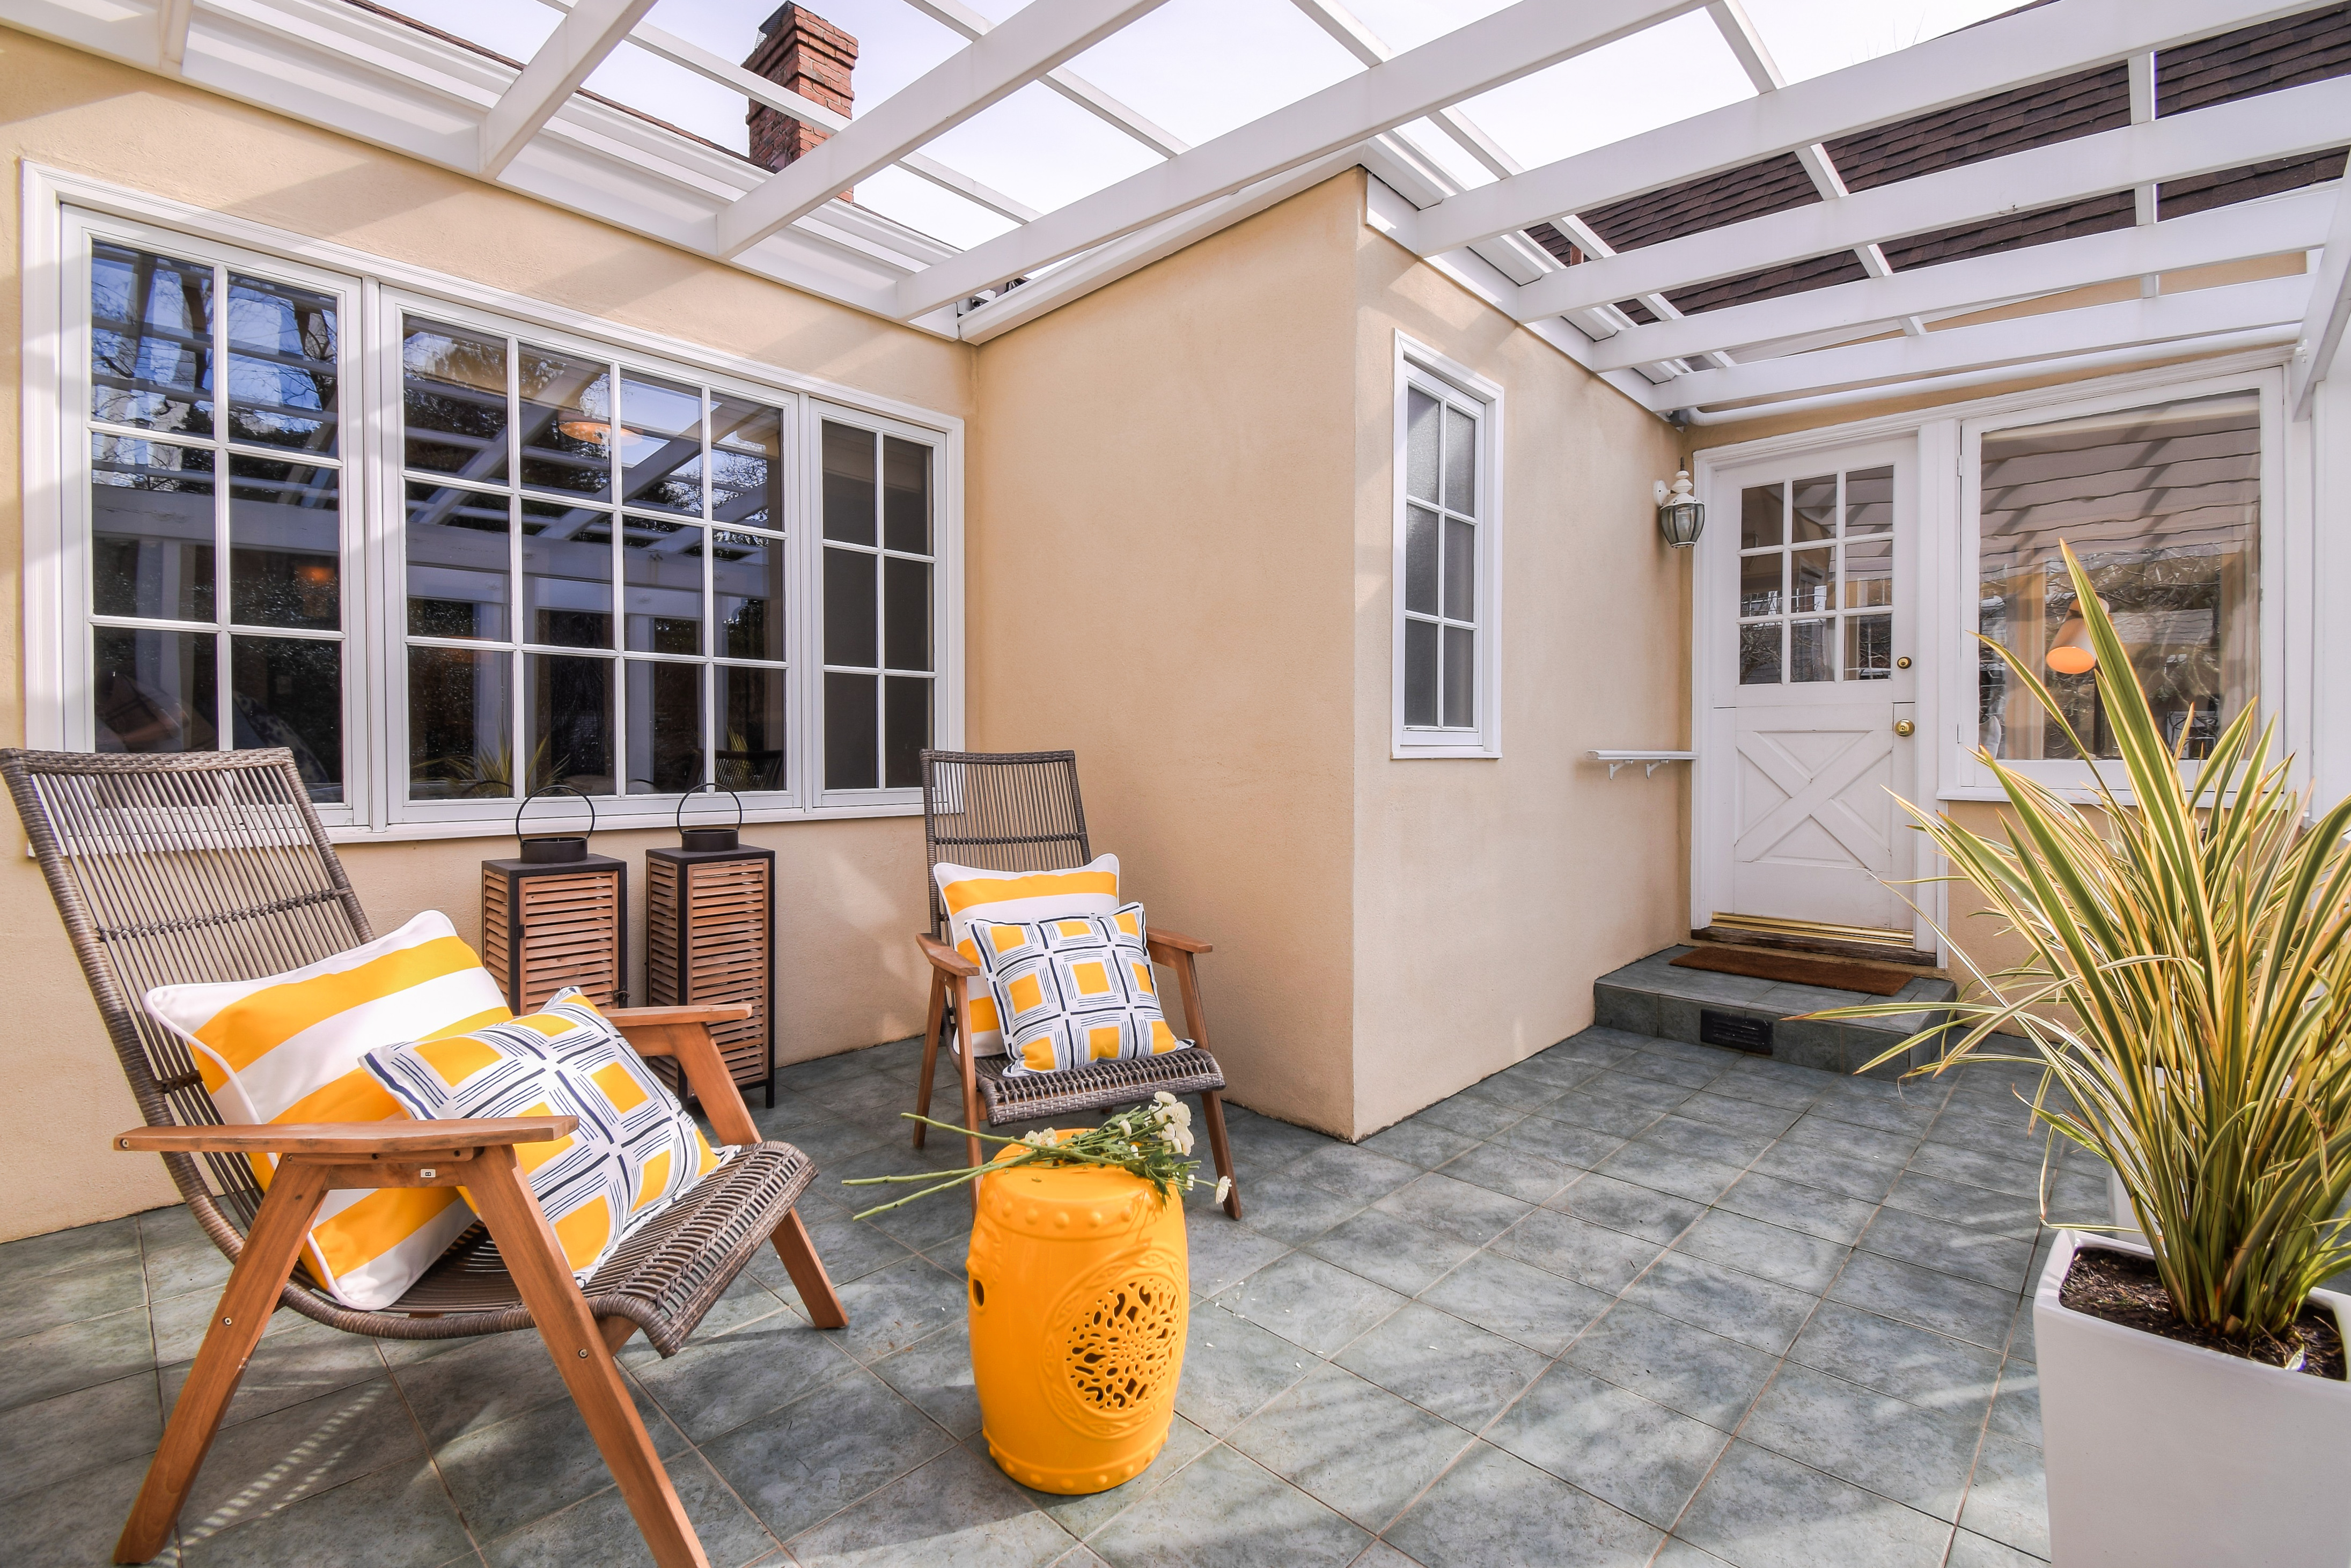 OUTDOOR SEATING TO SUNROOM